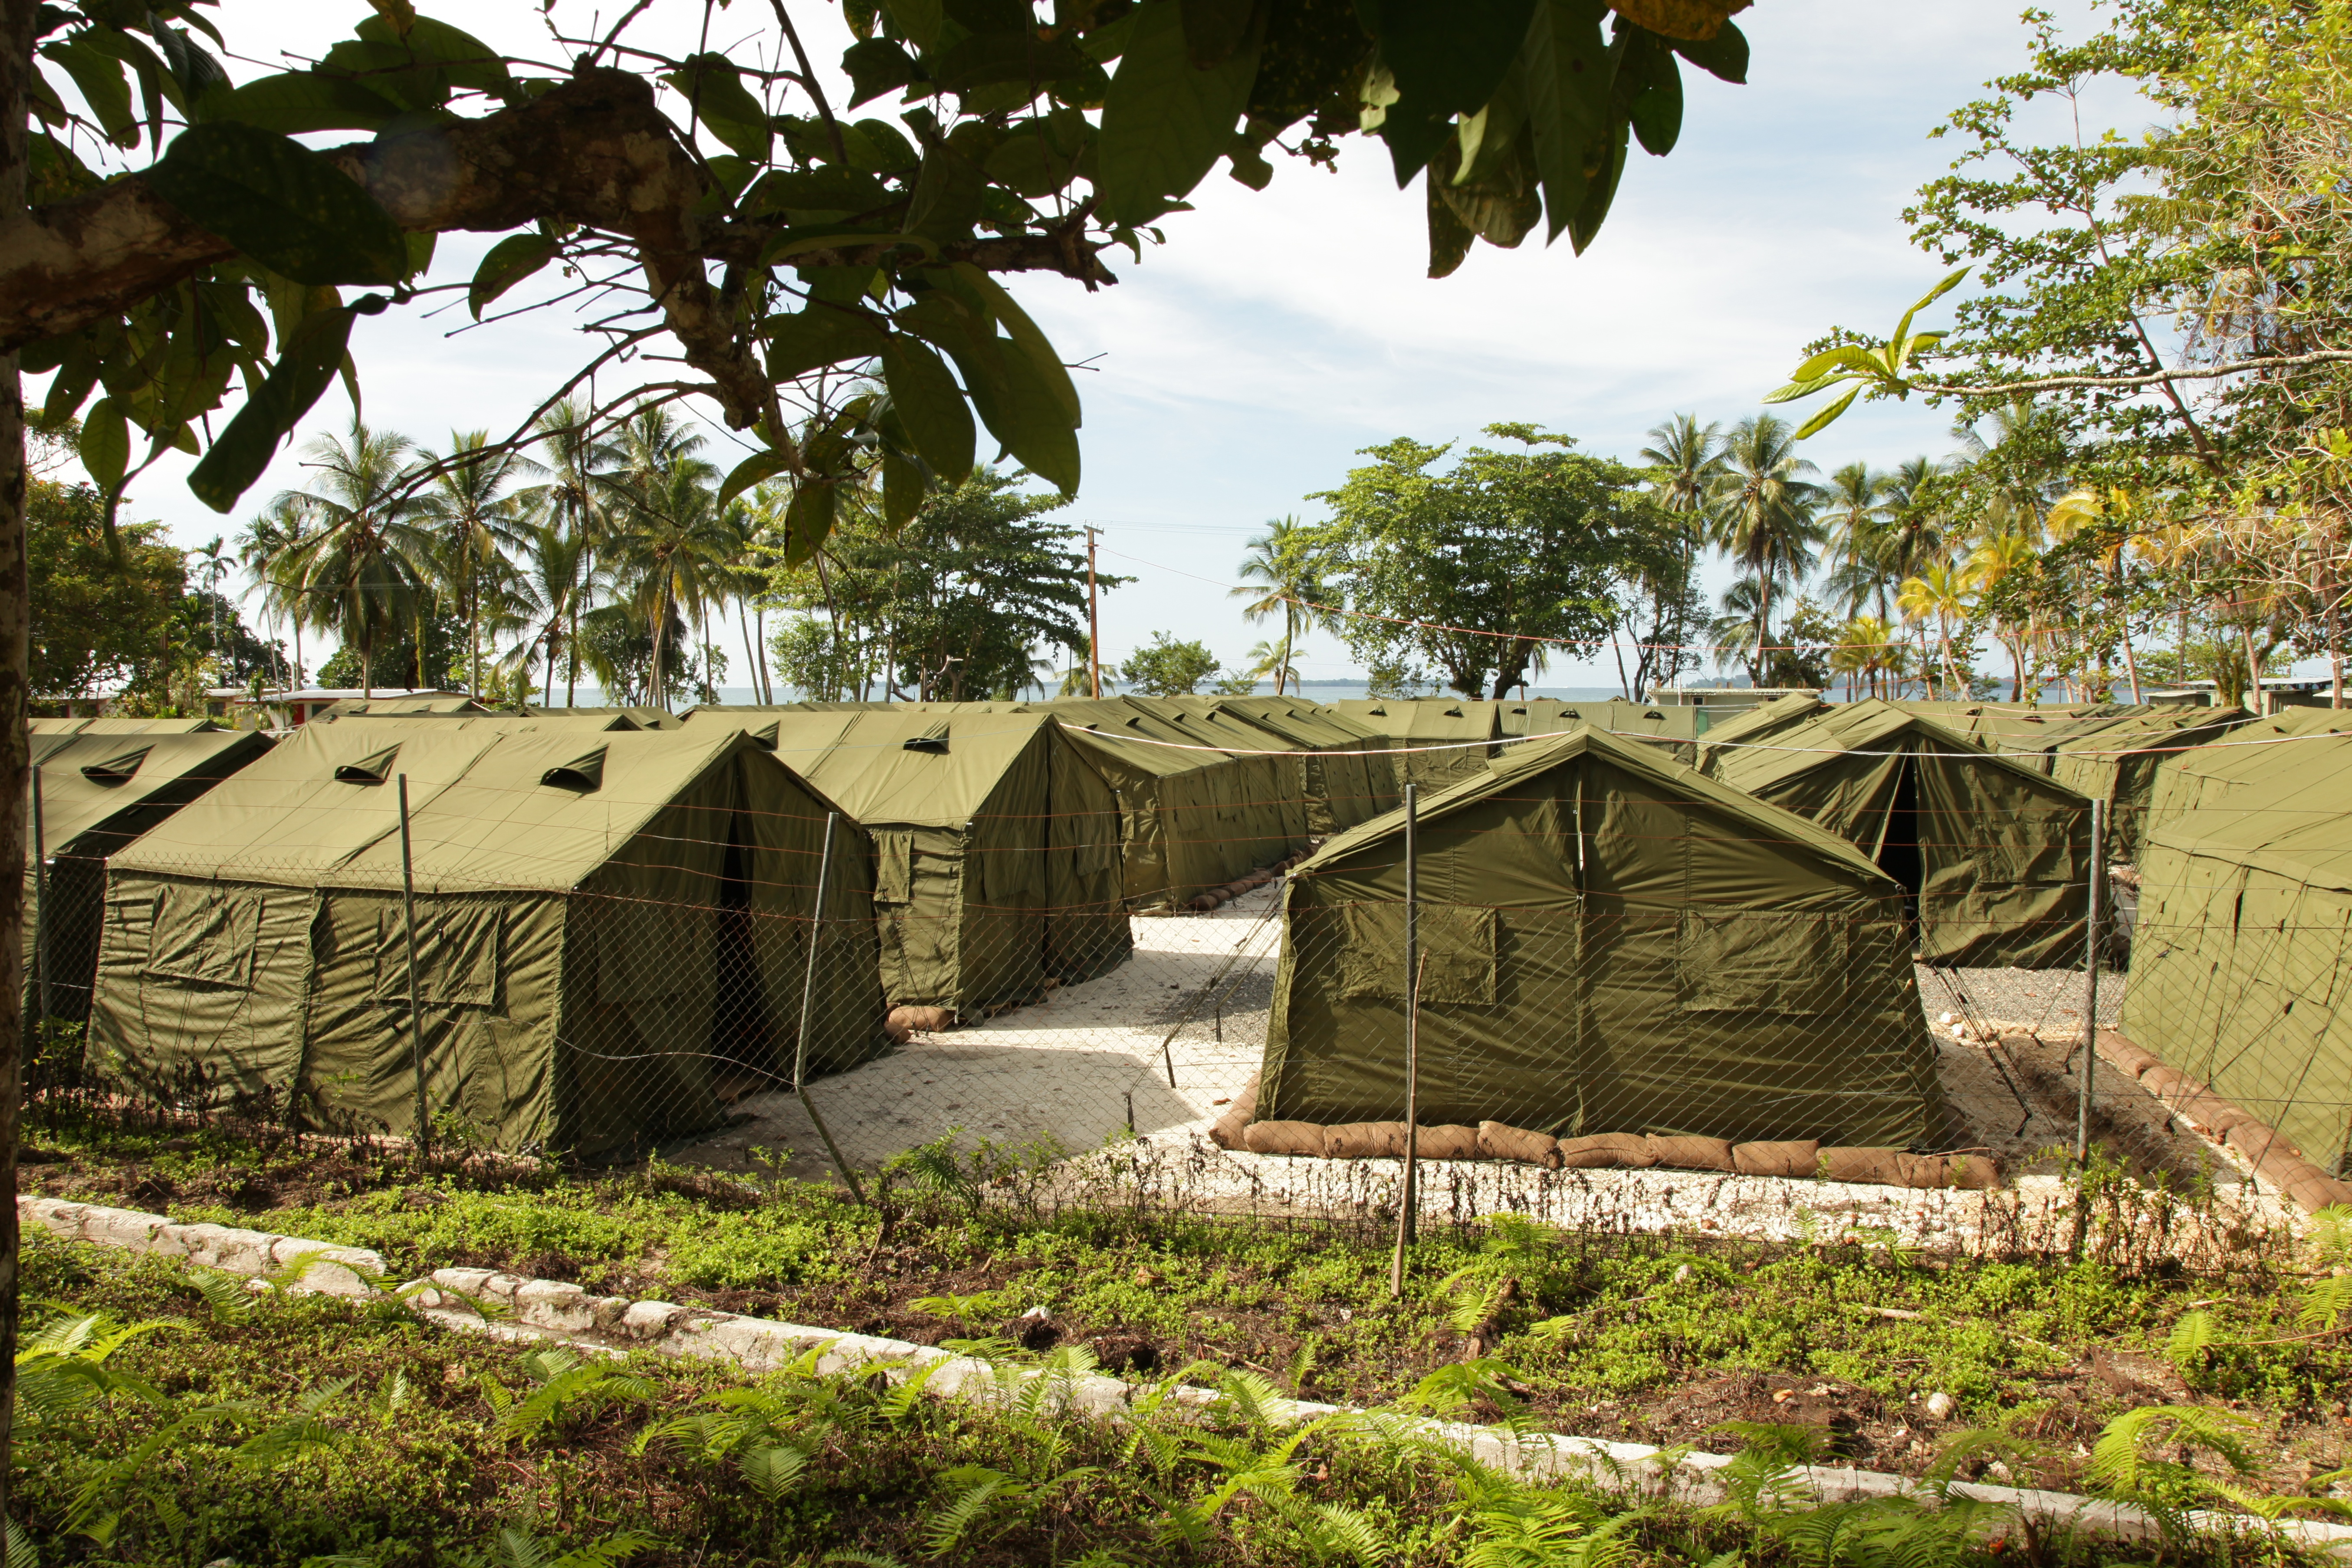 The Manus Island Regional Processing Facility, used to detain asylum seekers captured on Australia-bound boats, is seen on Oct. 16, 2012 on Manus Island, Papua New Guinea.